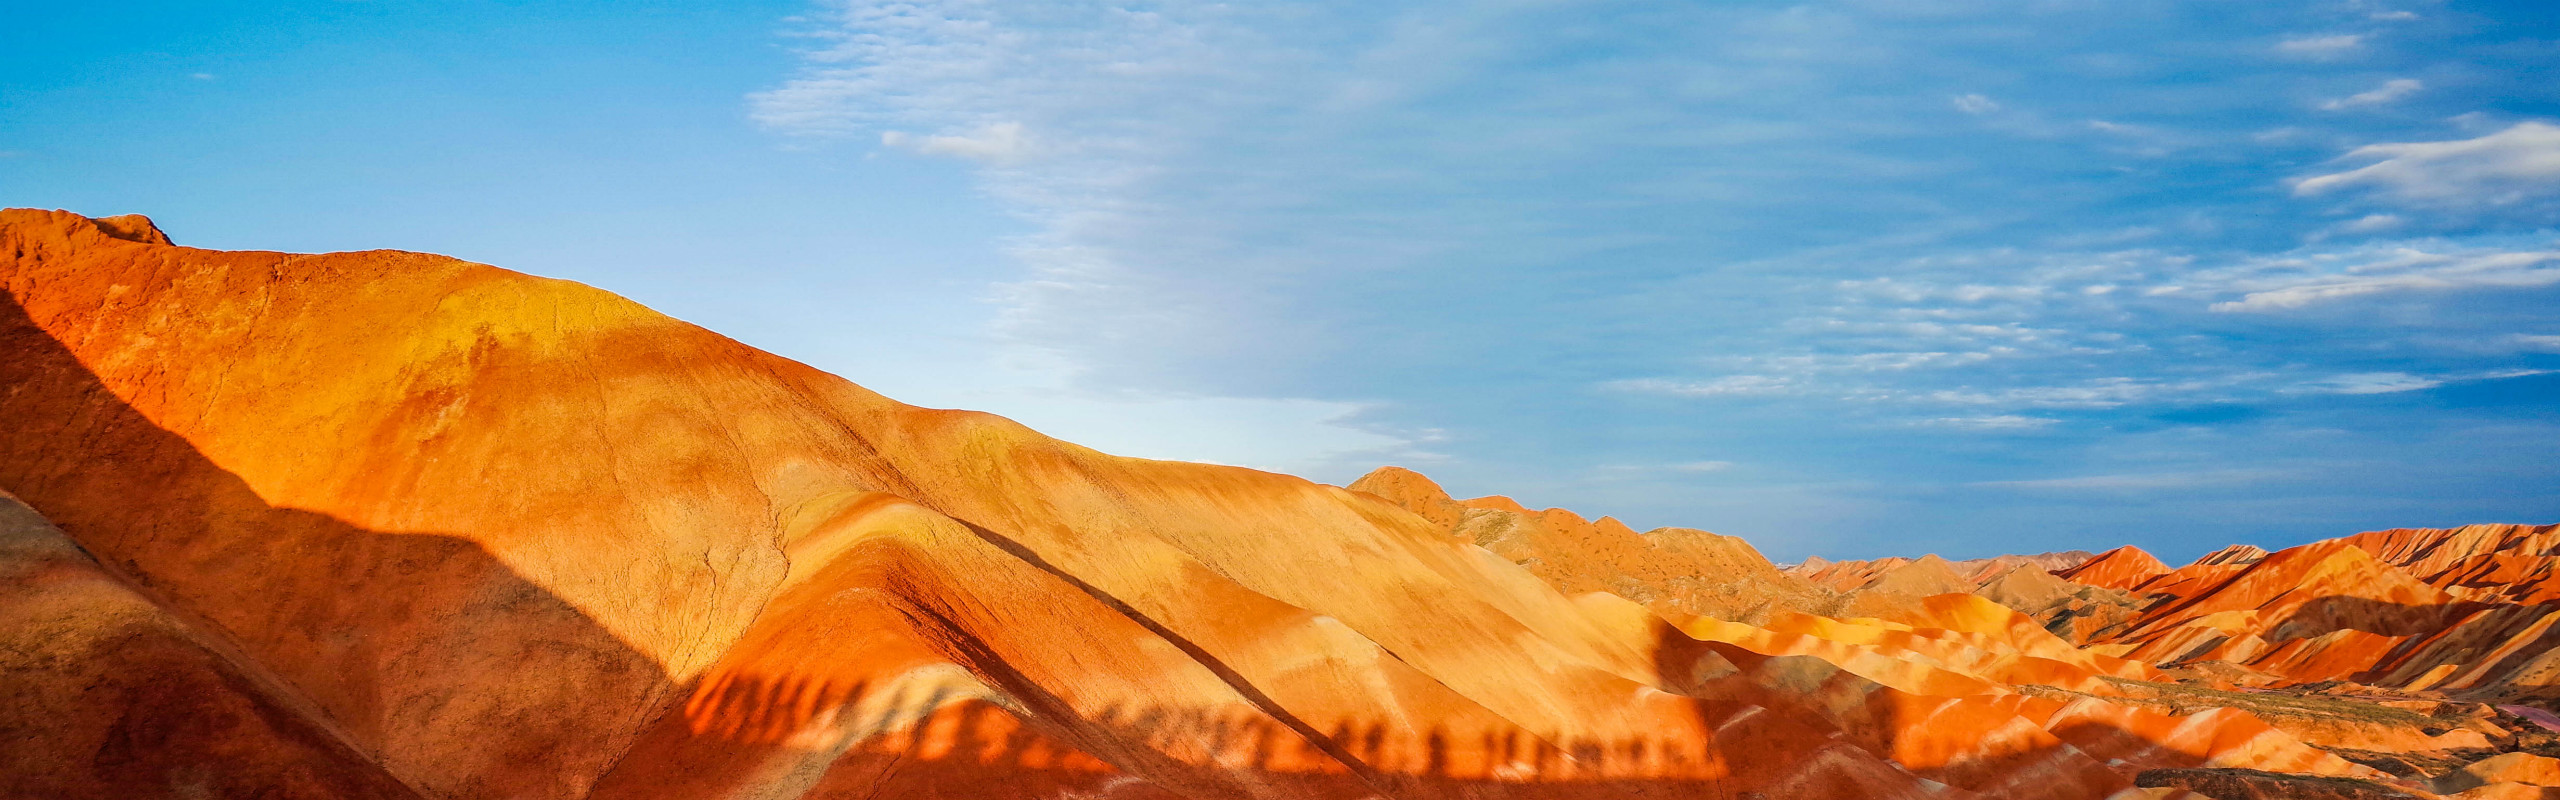 6 Days Silk Road Photography Tour in Zhangye and Dunhuang